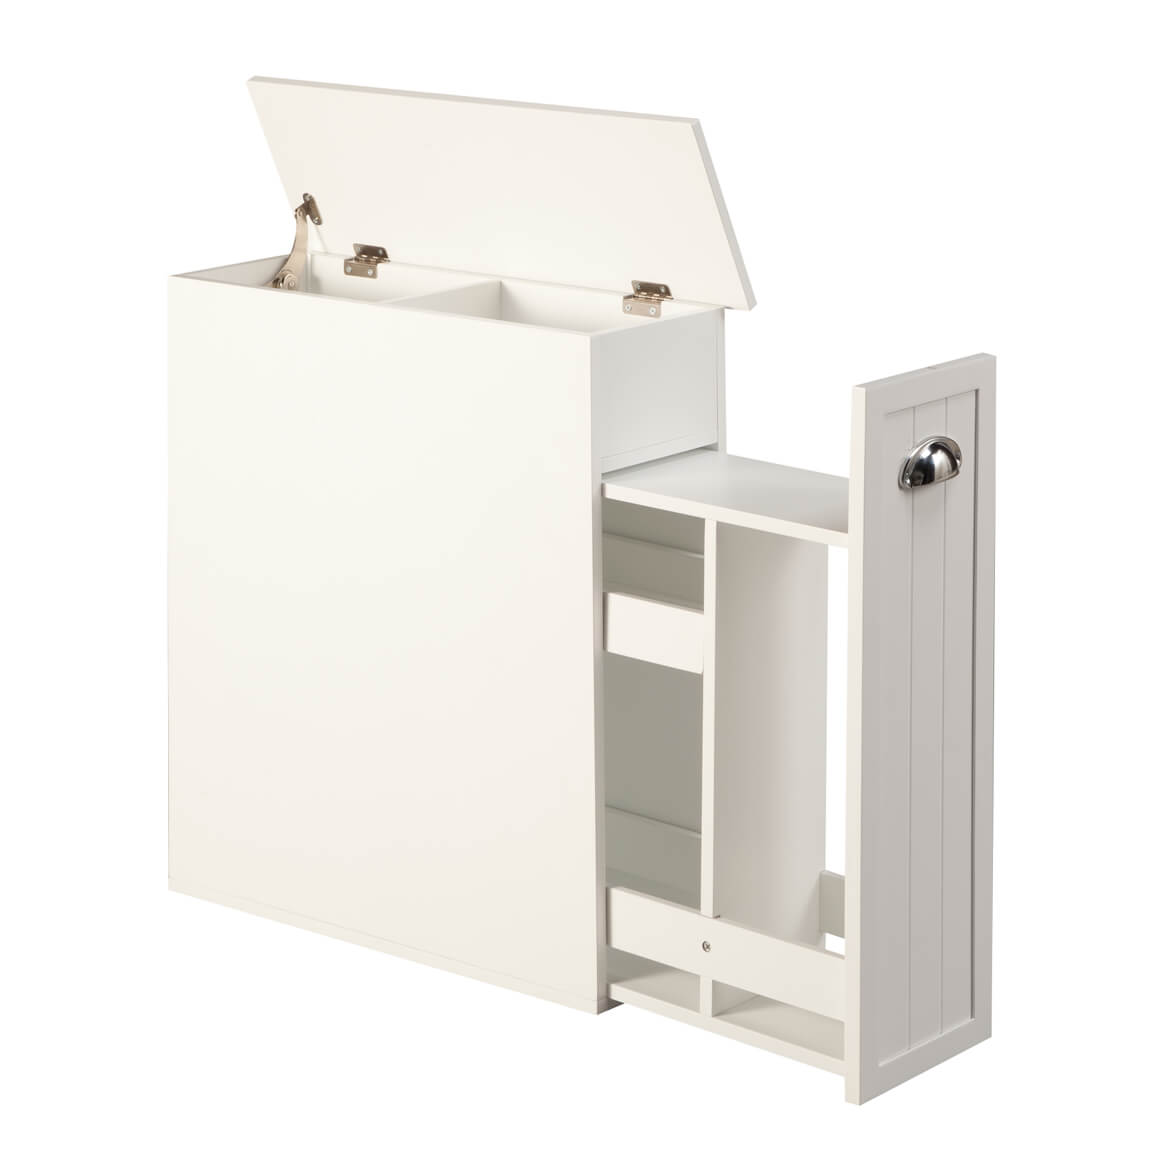 slimline bathroom wall cabinets slim bathroom storage cabinet by oakridgetm walmart 26267